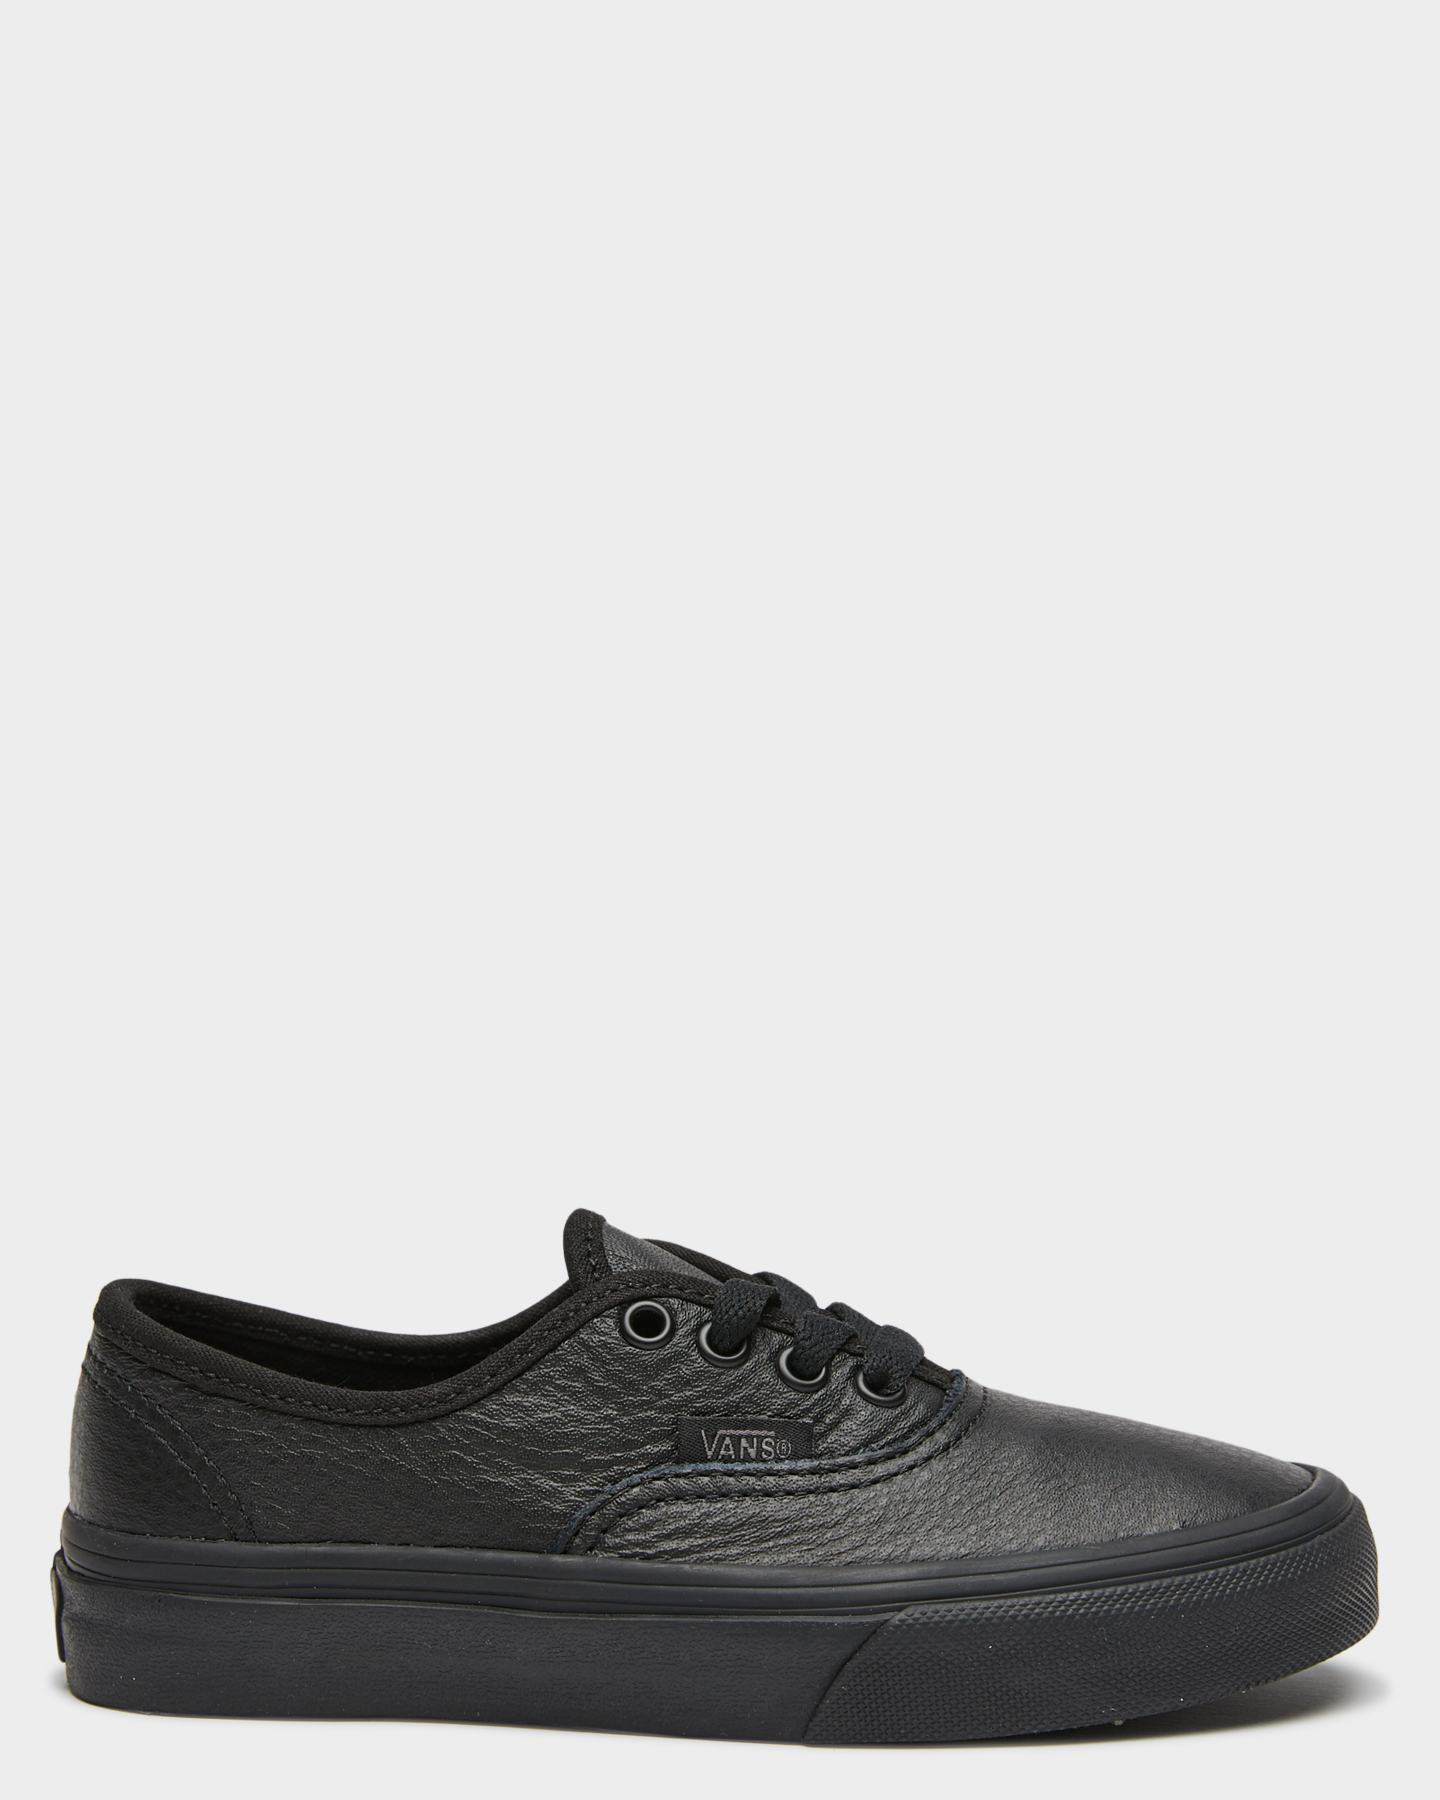 Vans Authentic Leather Shoe - Youth